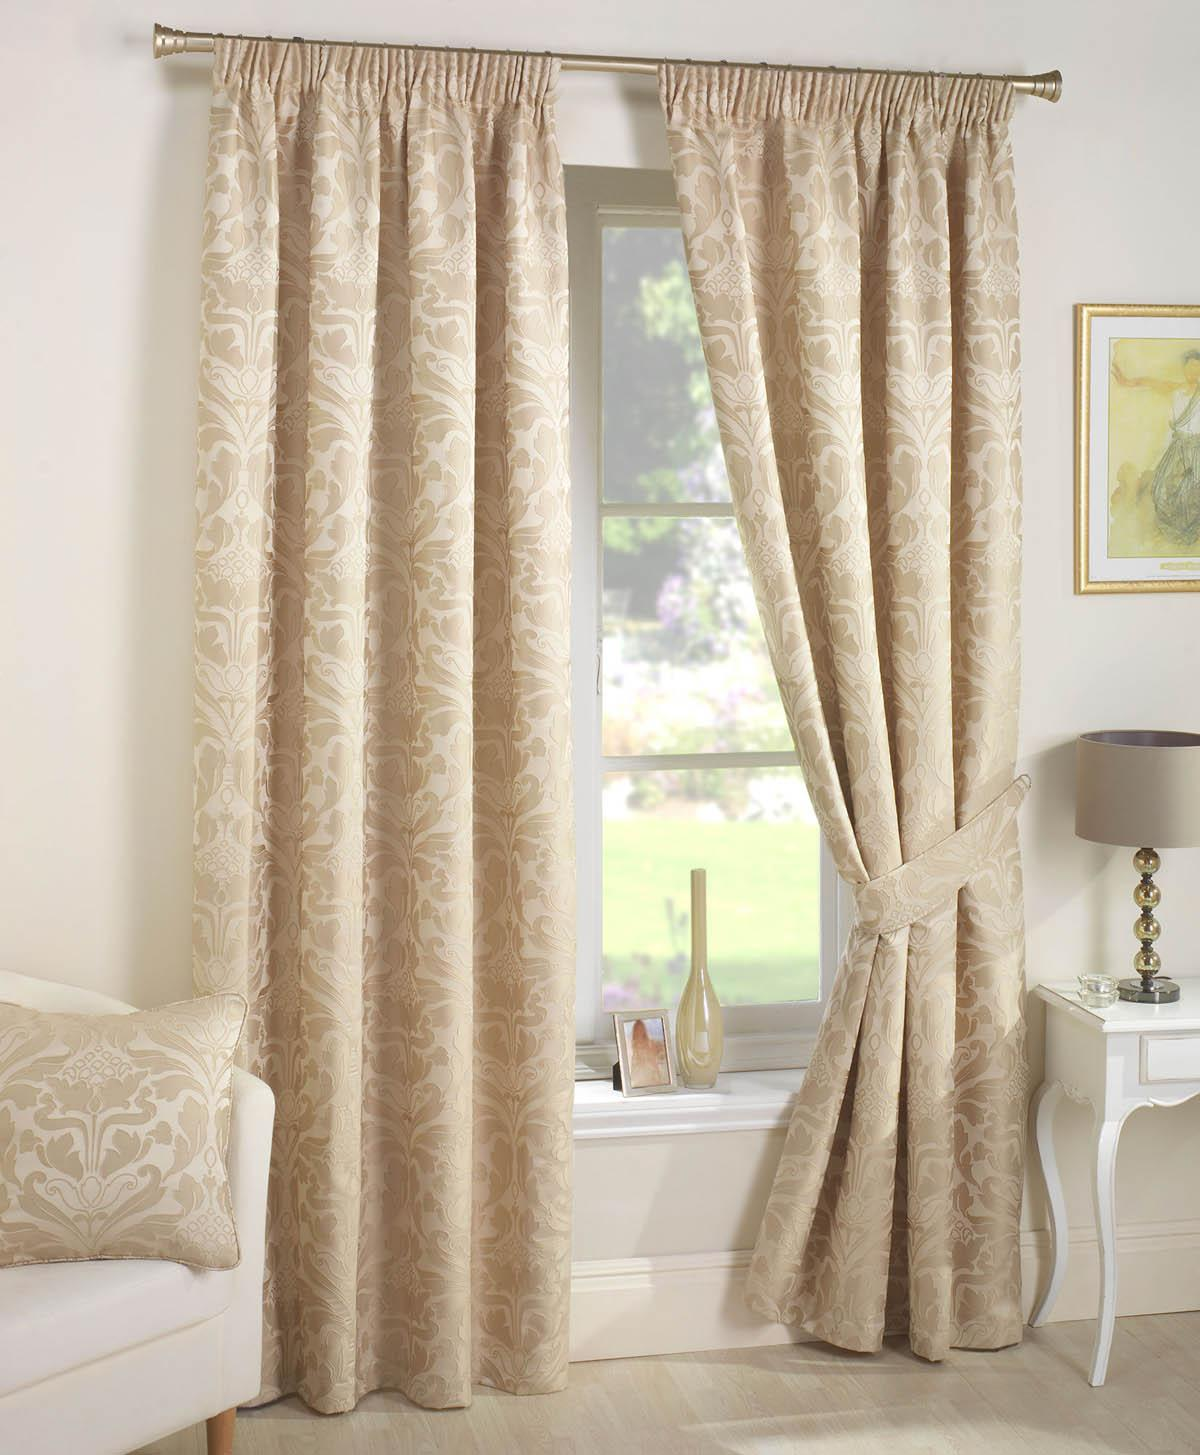 Crompton Ready Made Lined Curtains